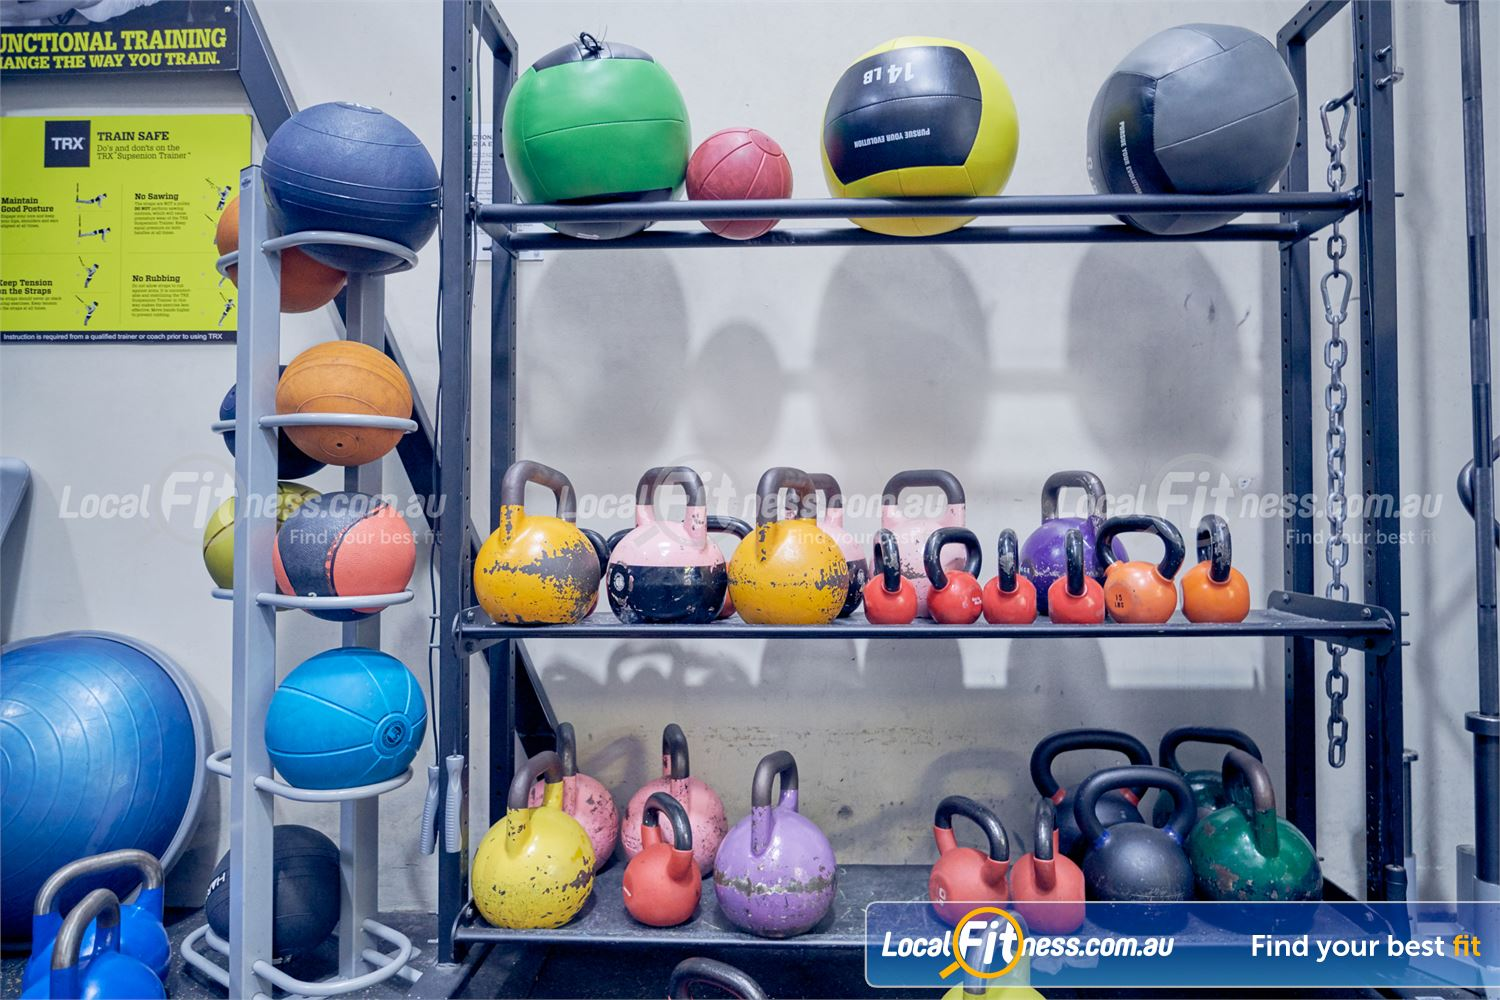 Goodlife Health Clubs Dingley Village Fully equipped with wall balls, kettlebells, bosu balls and more.